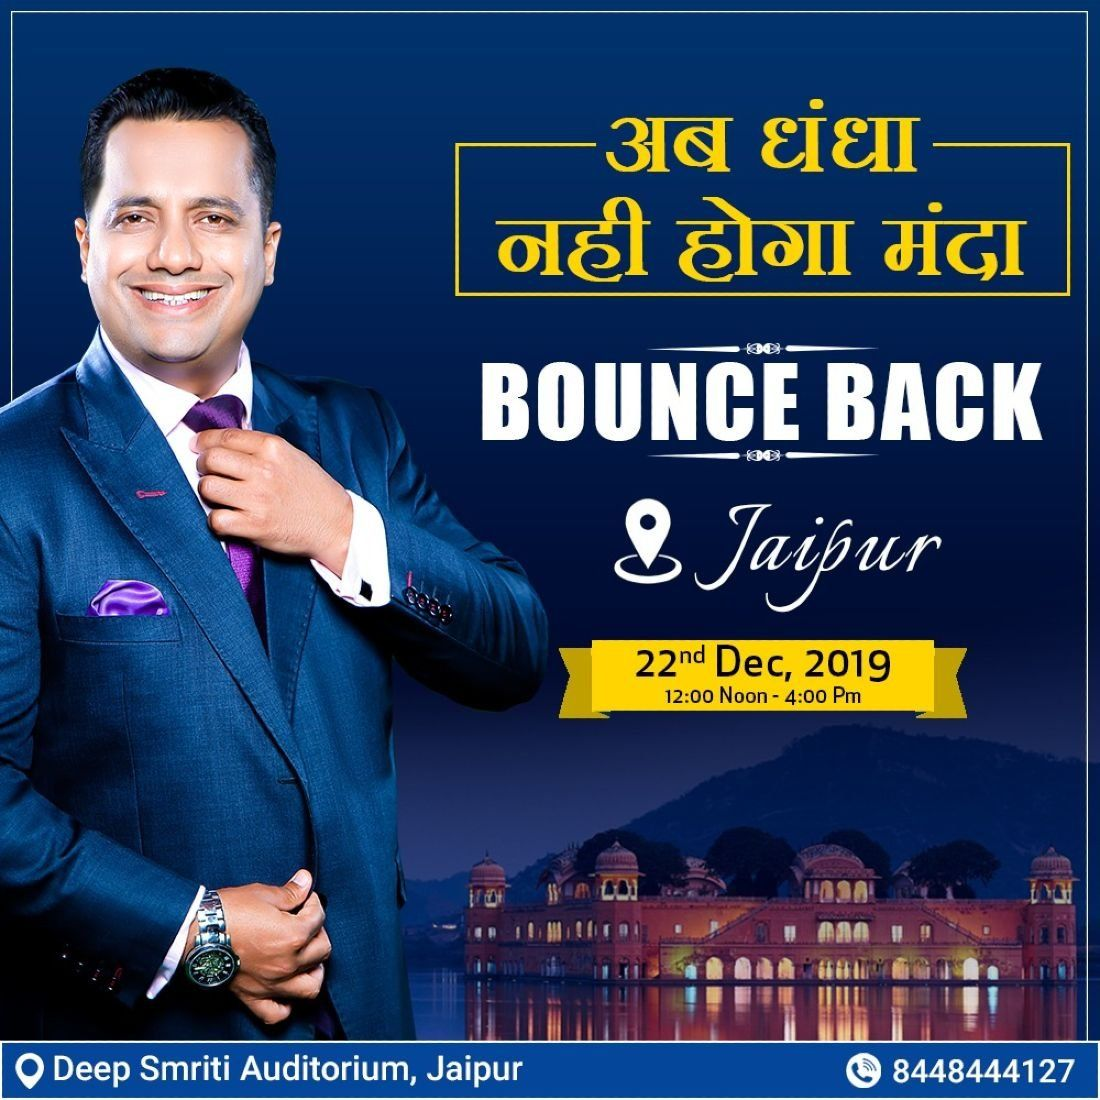 Bounce Back Jaipur by Dr. Vivek Bindra